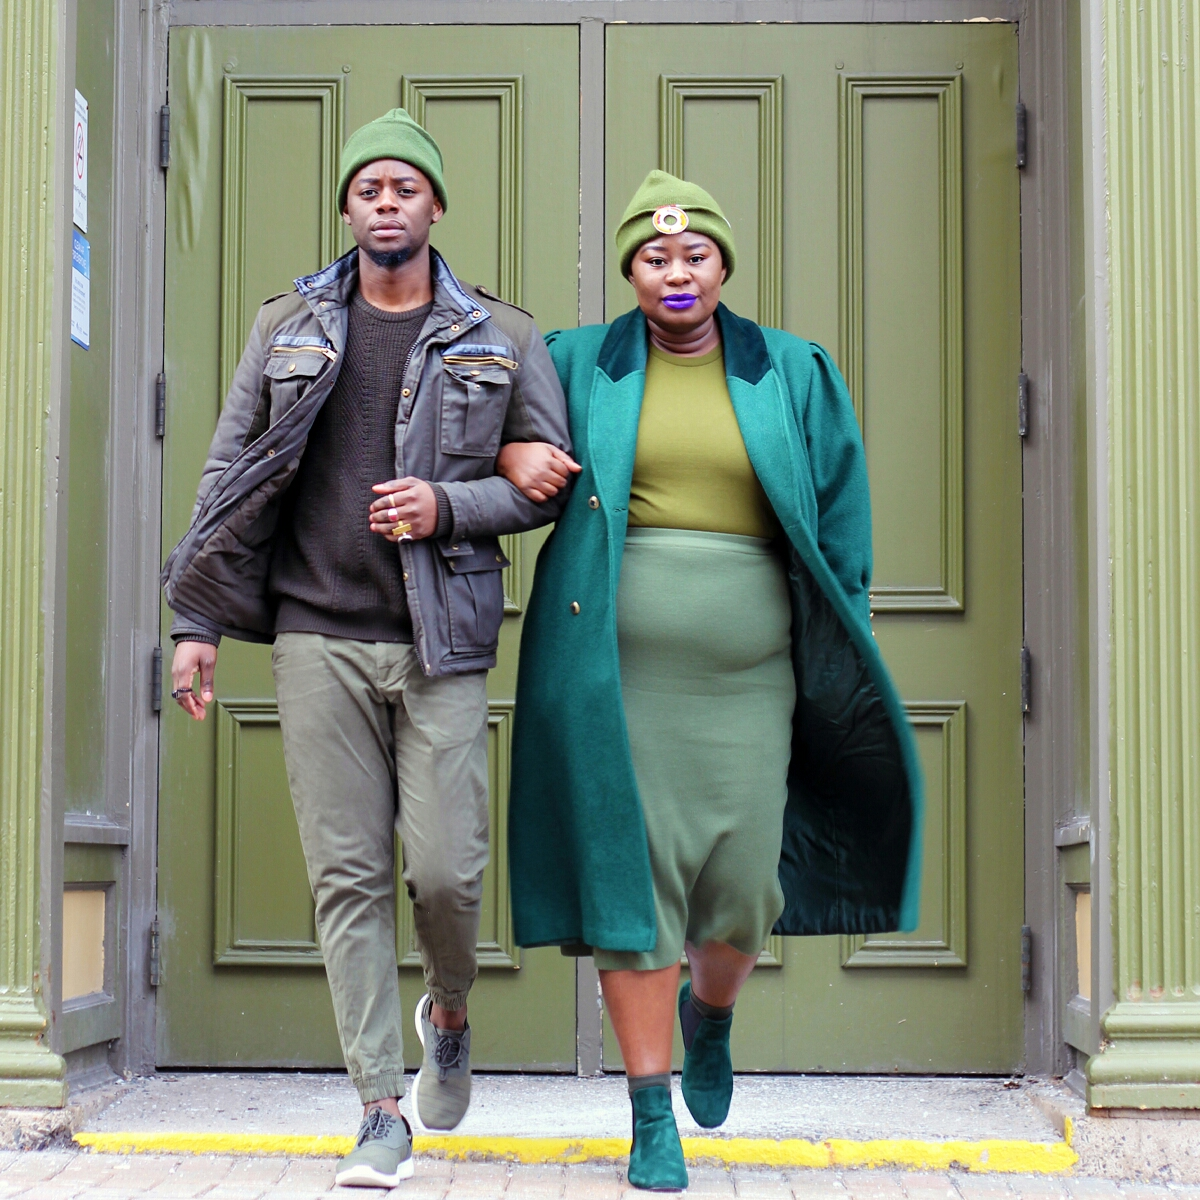 style twins stylish siblings stylish duos style duos green street style all green outfit his and hers green outfits 08